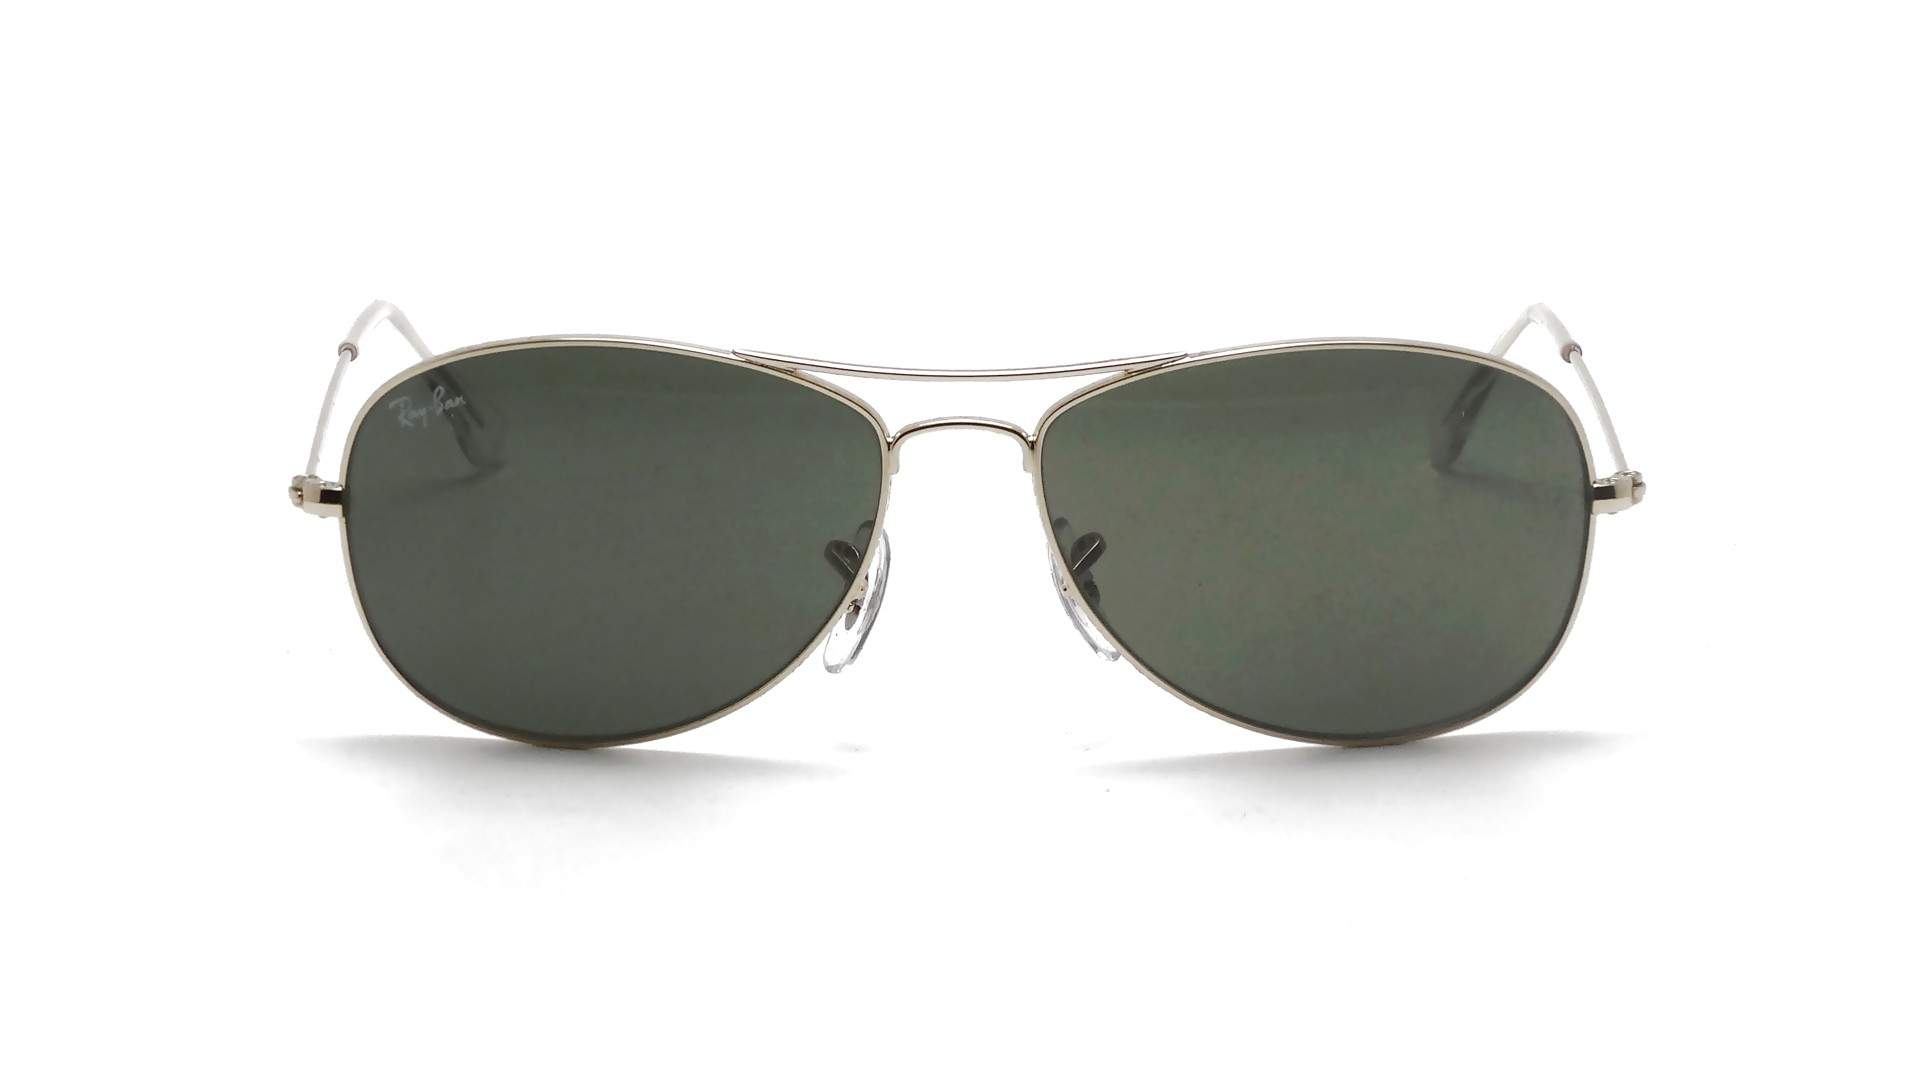 bb57c3945d612 Sunglasses Ray-Ban Cockpit Gold RB3362 001 56-14 Medium